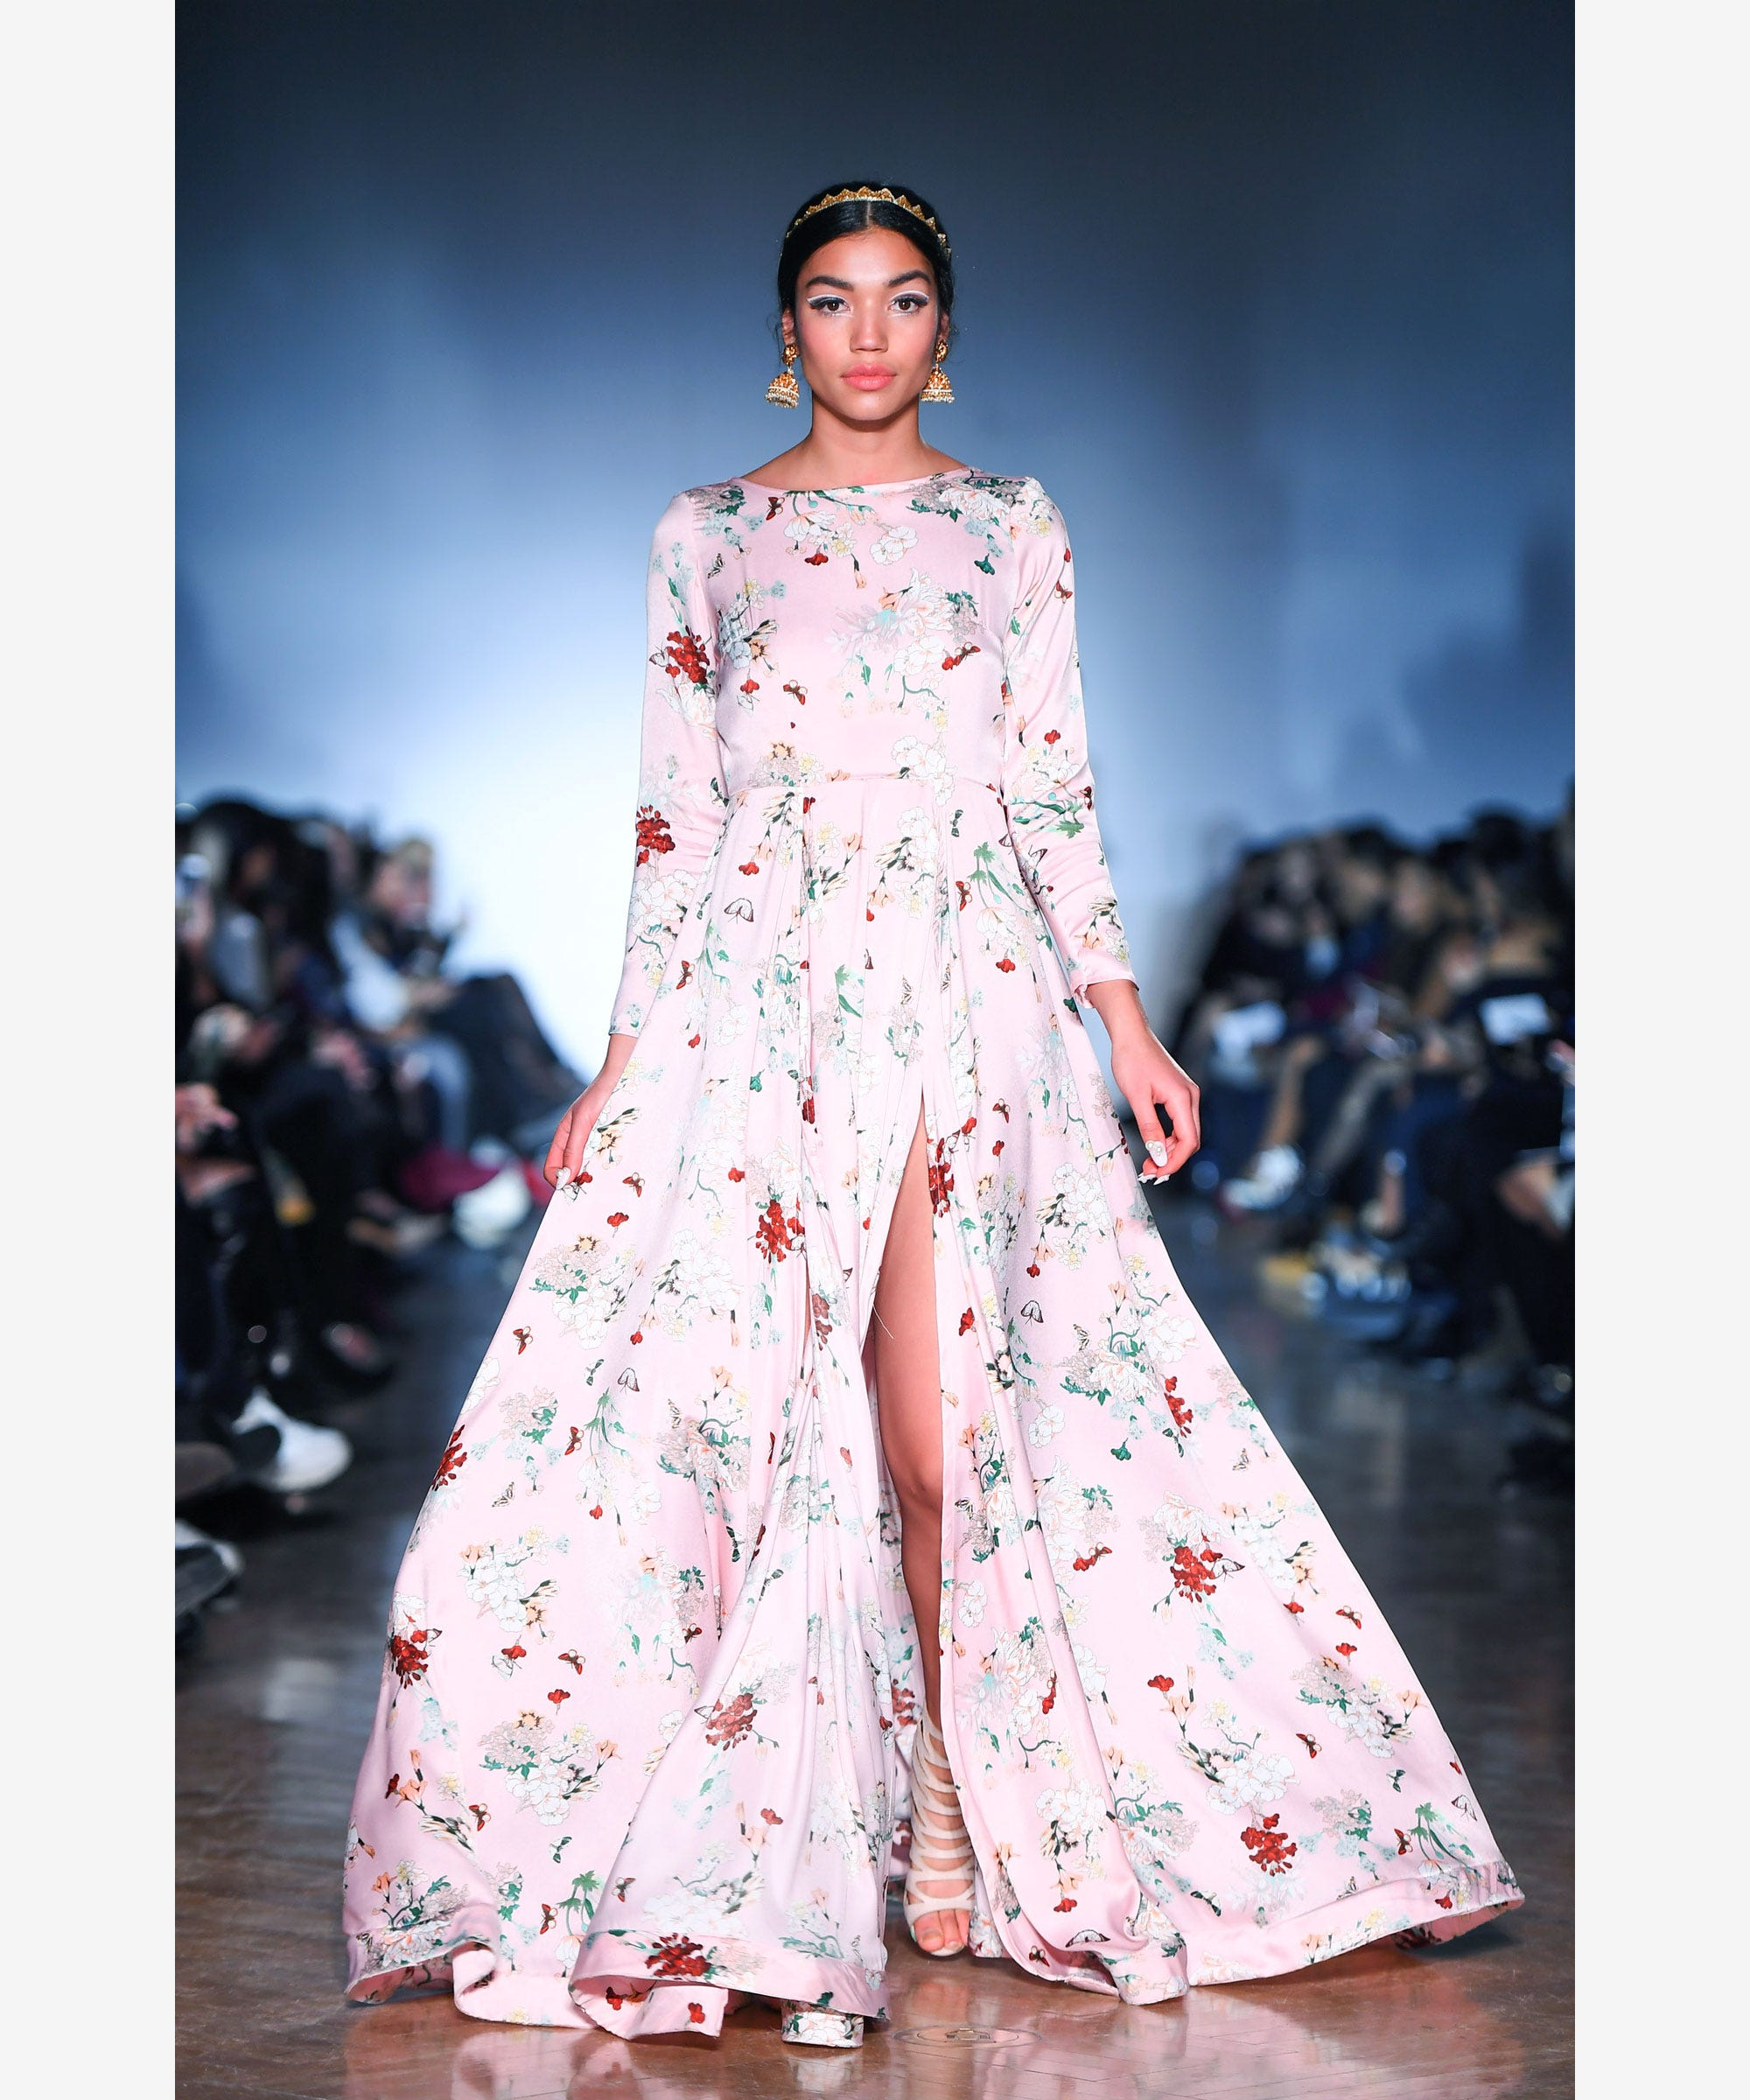 bf2b90200c6 These Are The Most Stunning Looks From Toronto Fashion Week